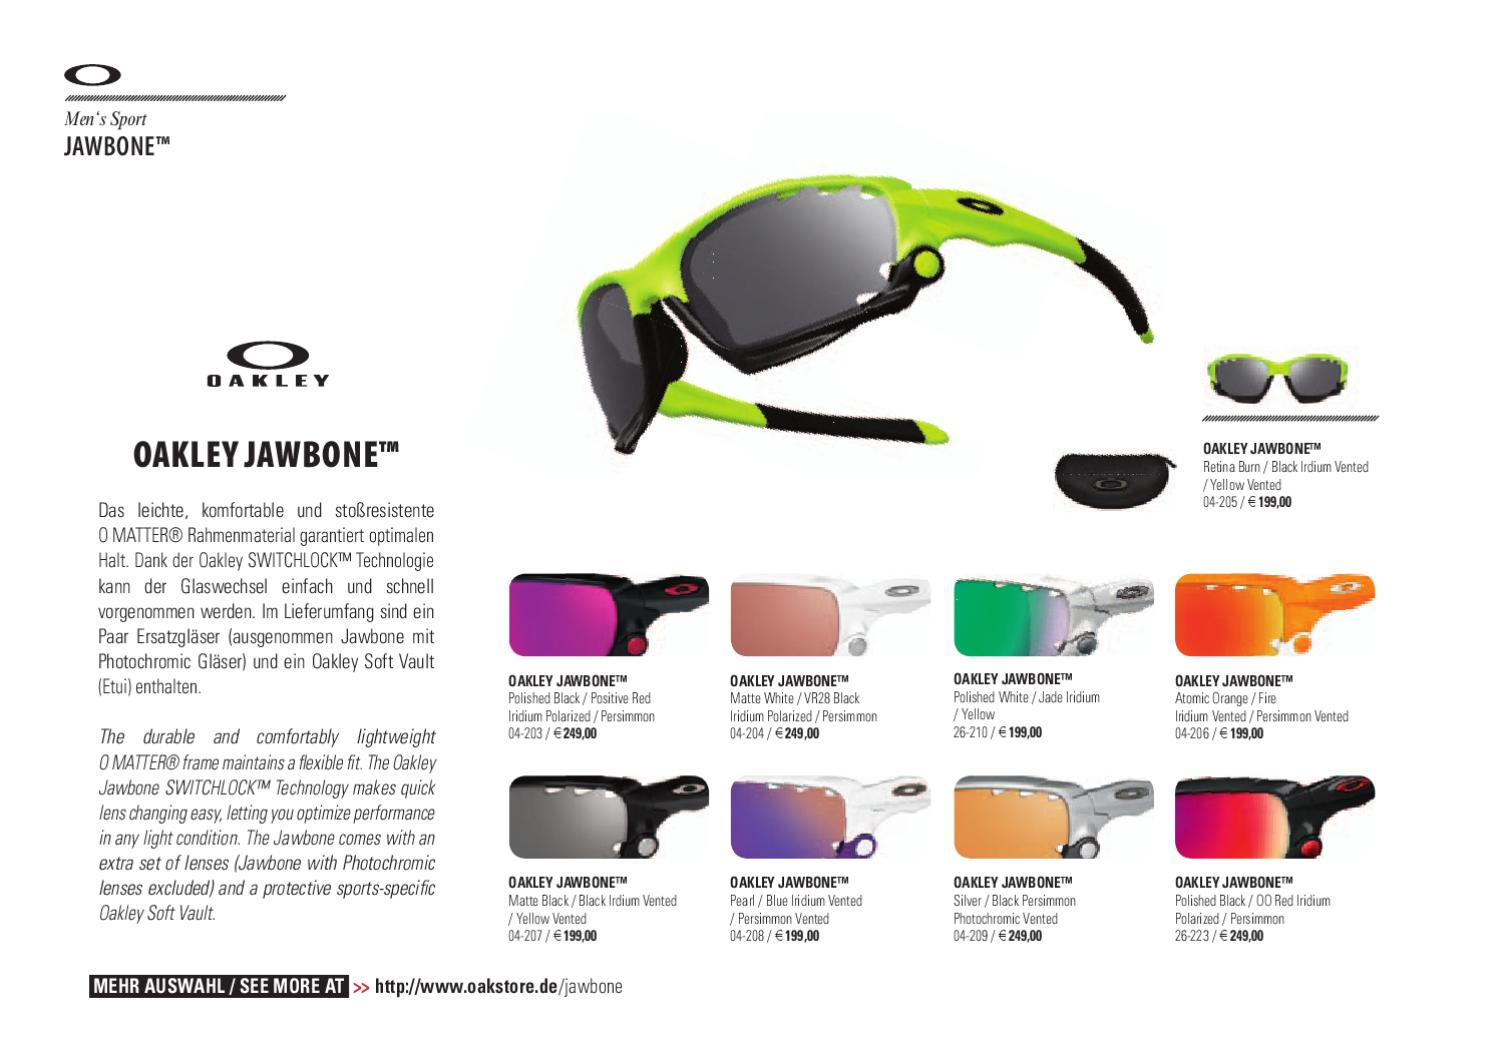 98a5d50662 Oakley Catalog Winter 2010 - 2011 presented by Oakstore.de by 4ego  Lifestyle GmbH - issuu